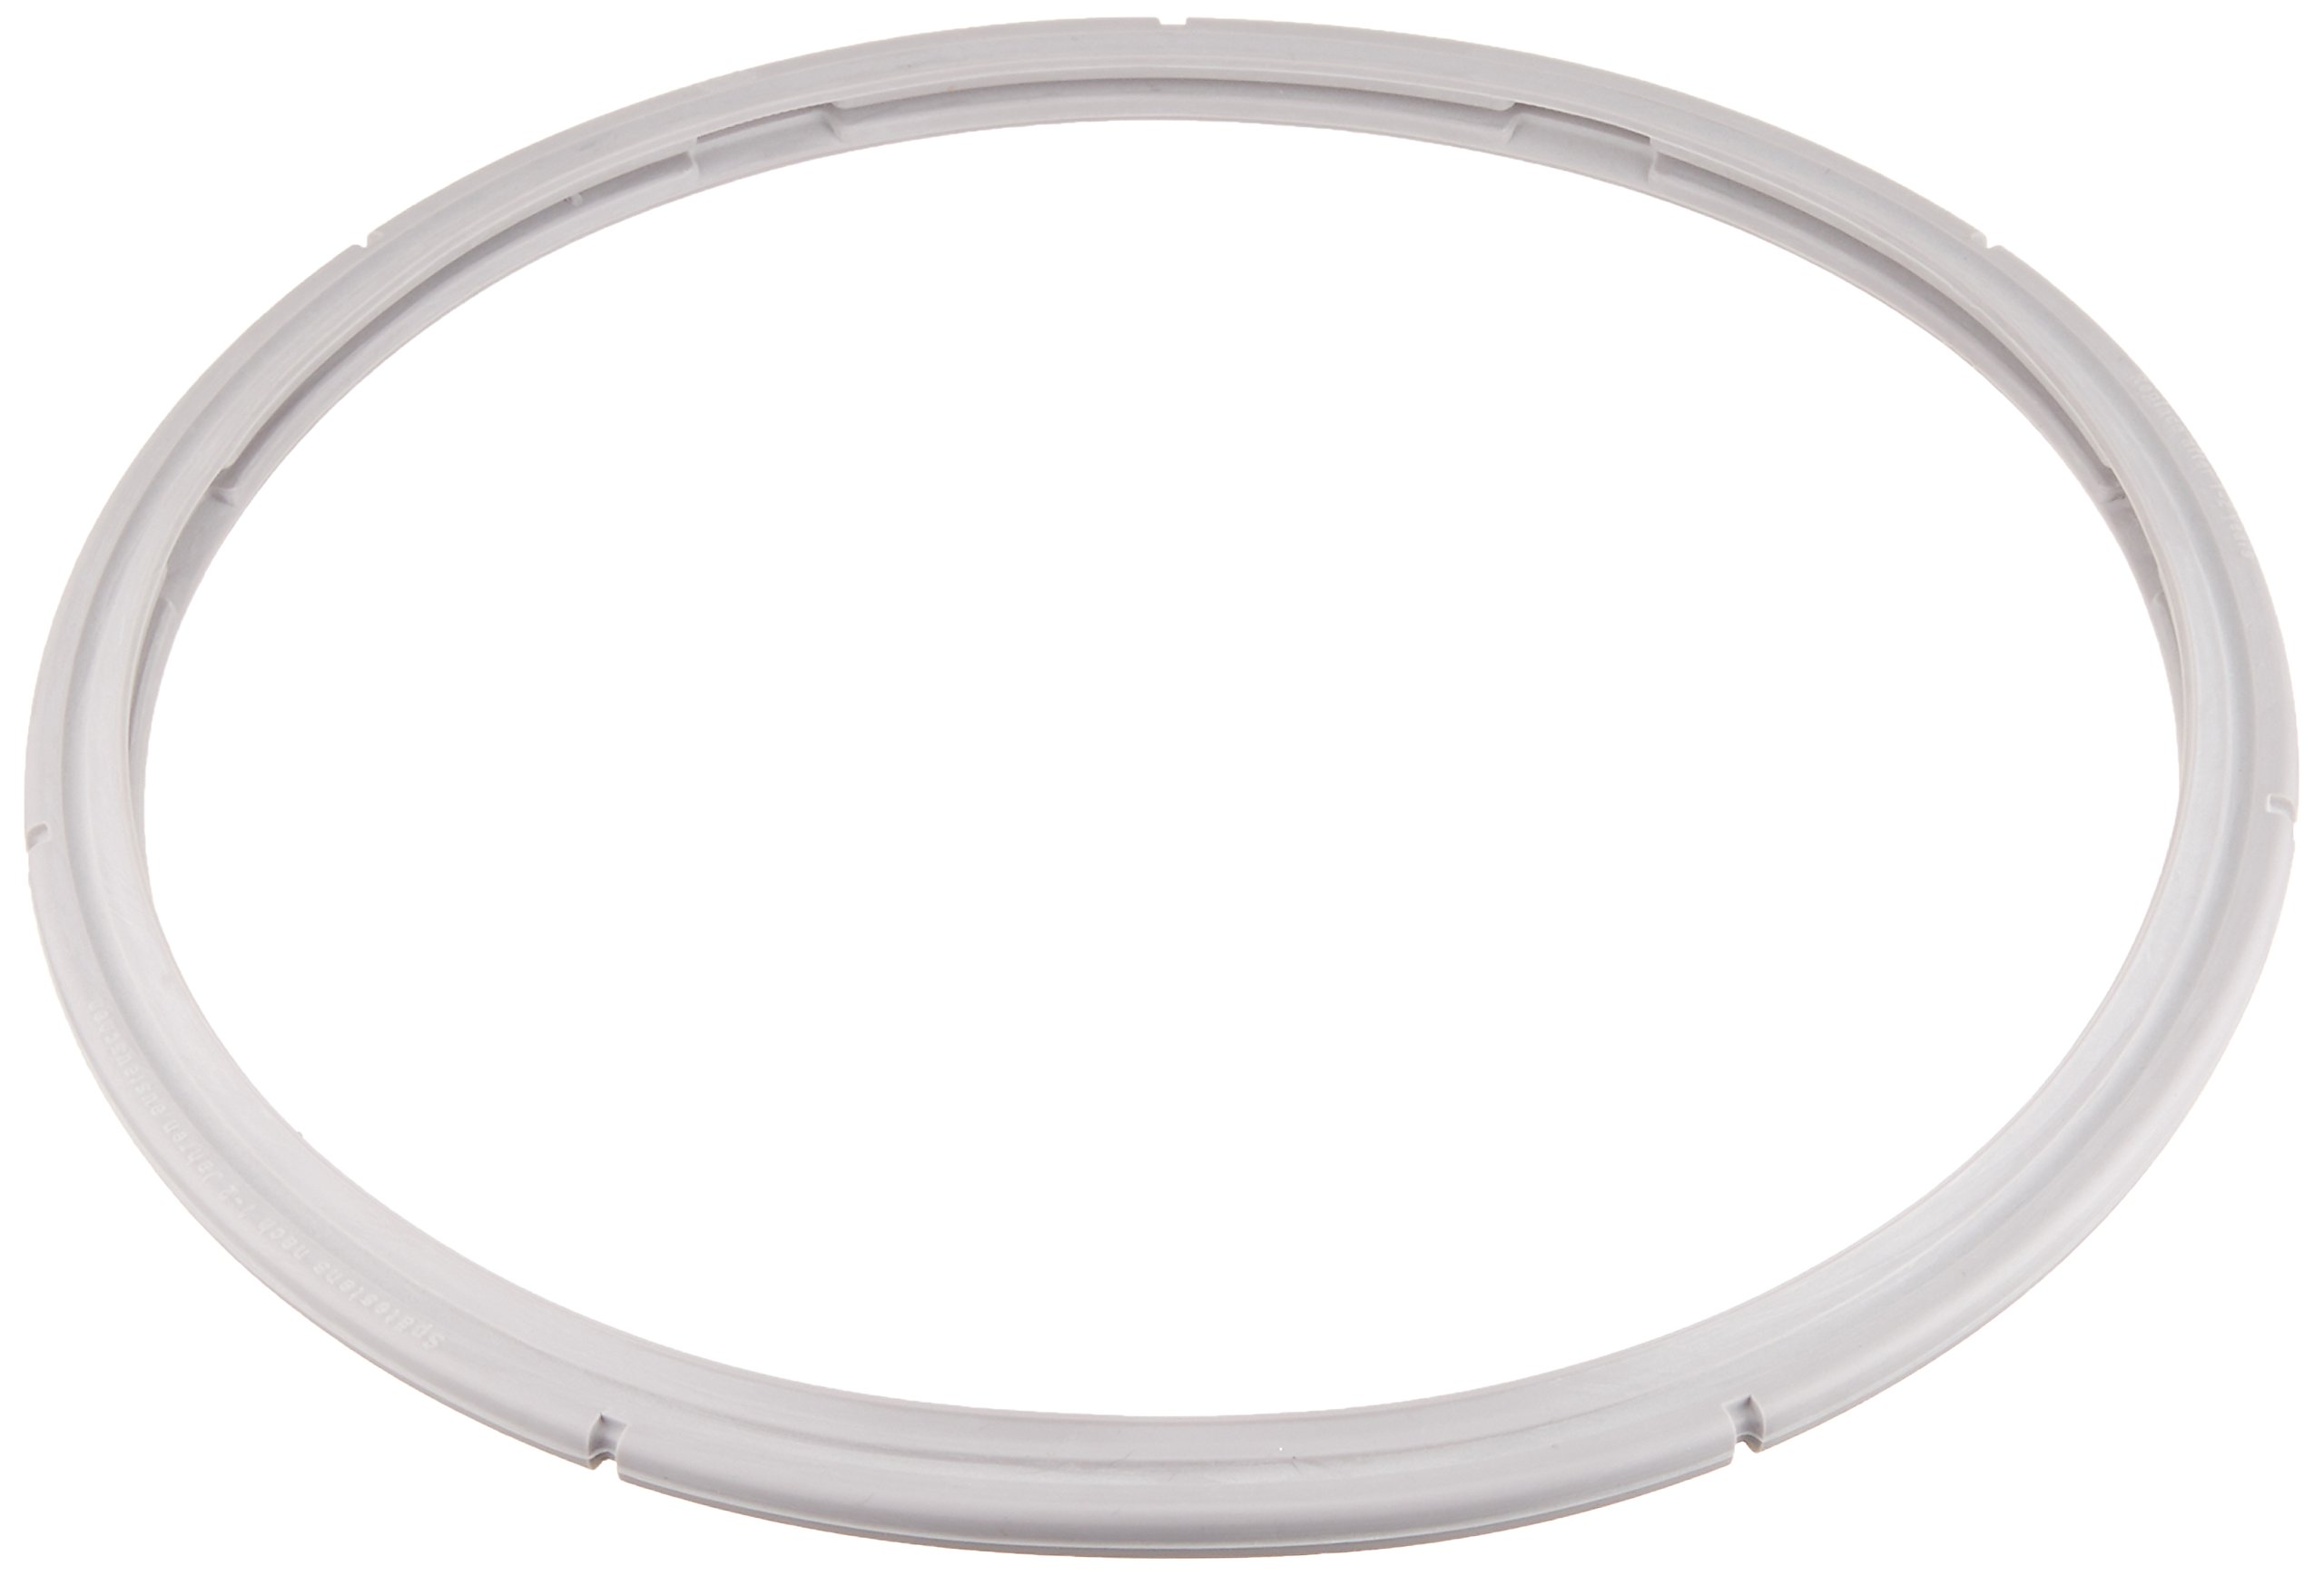 Fissler Vitaquick FIS9204 Silicone Gasket, fits 26 Centimeter Fissler Pressure Cookers and Skillets